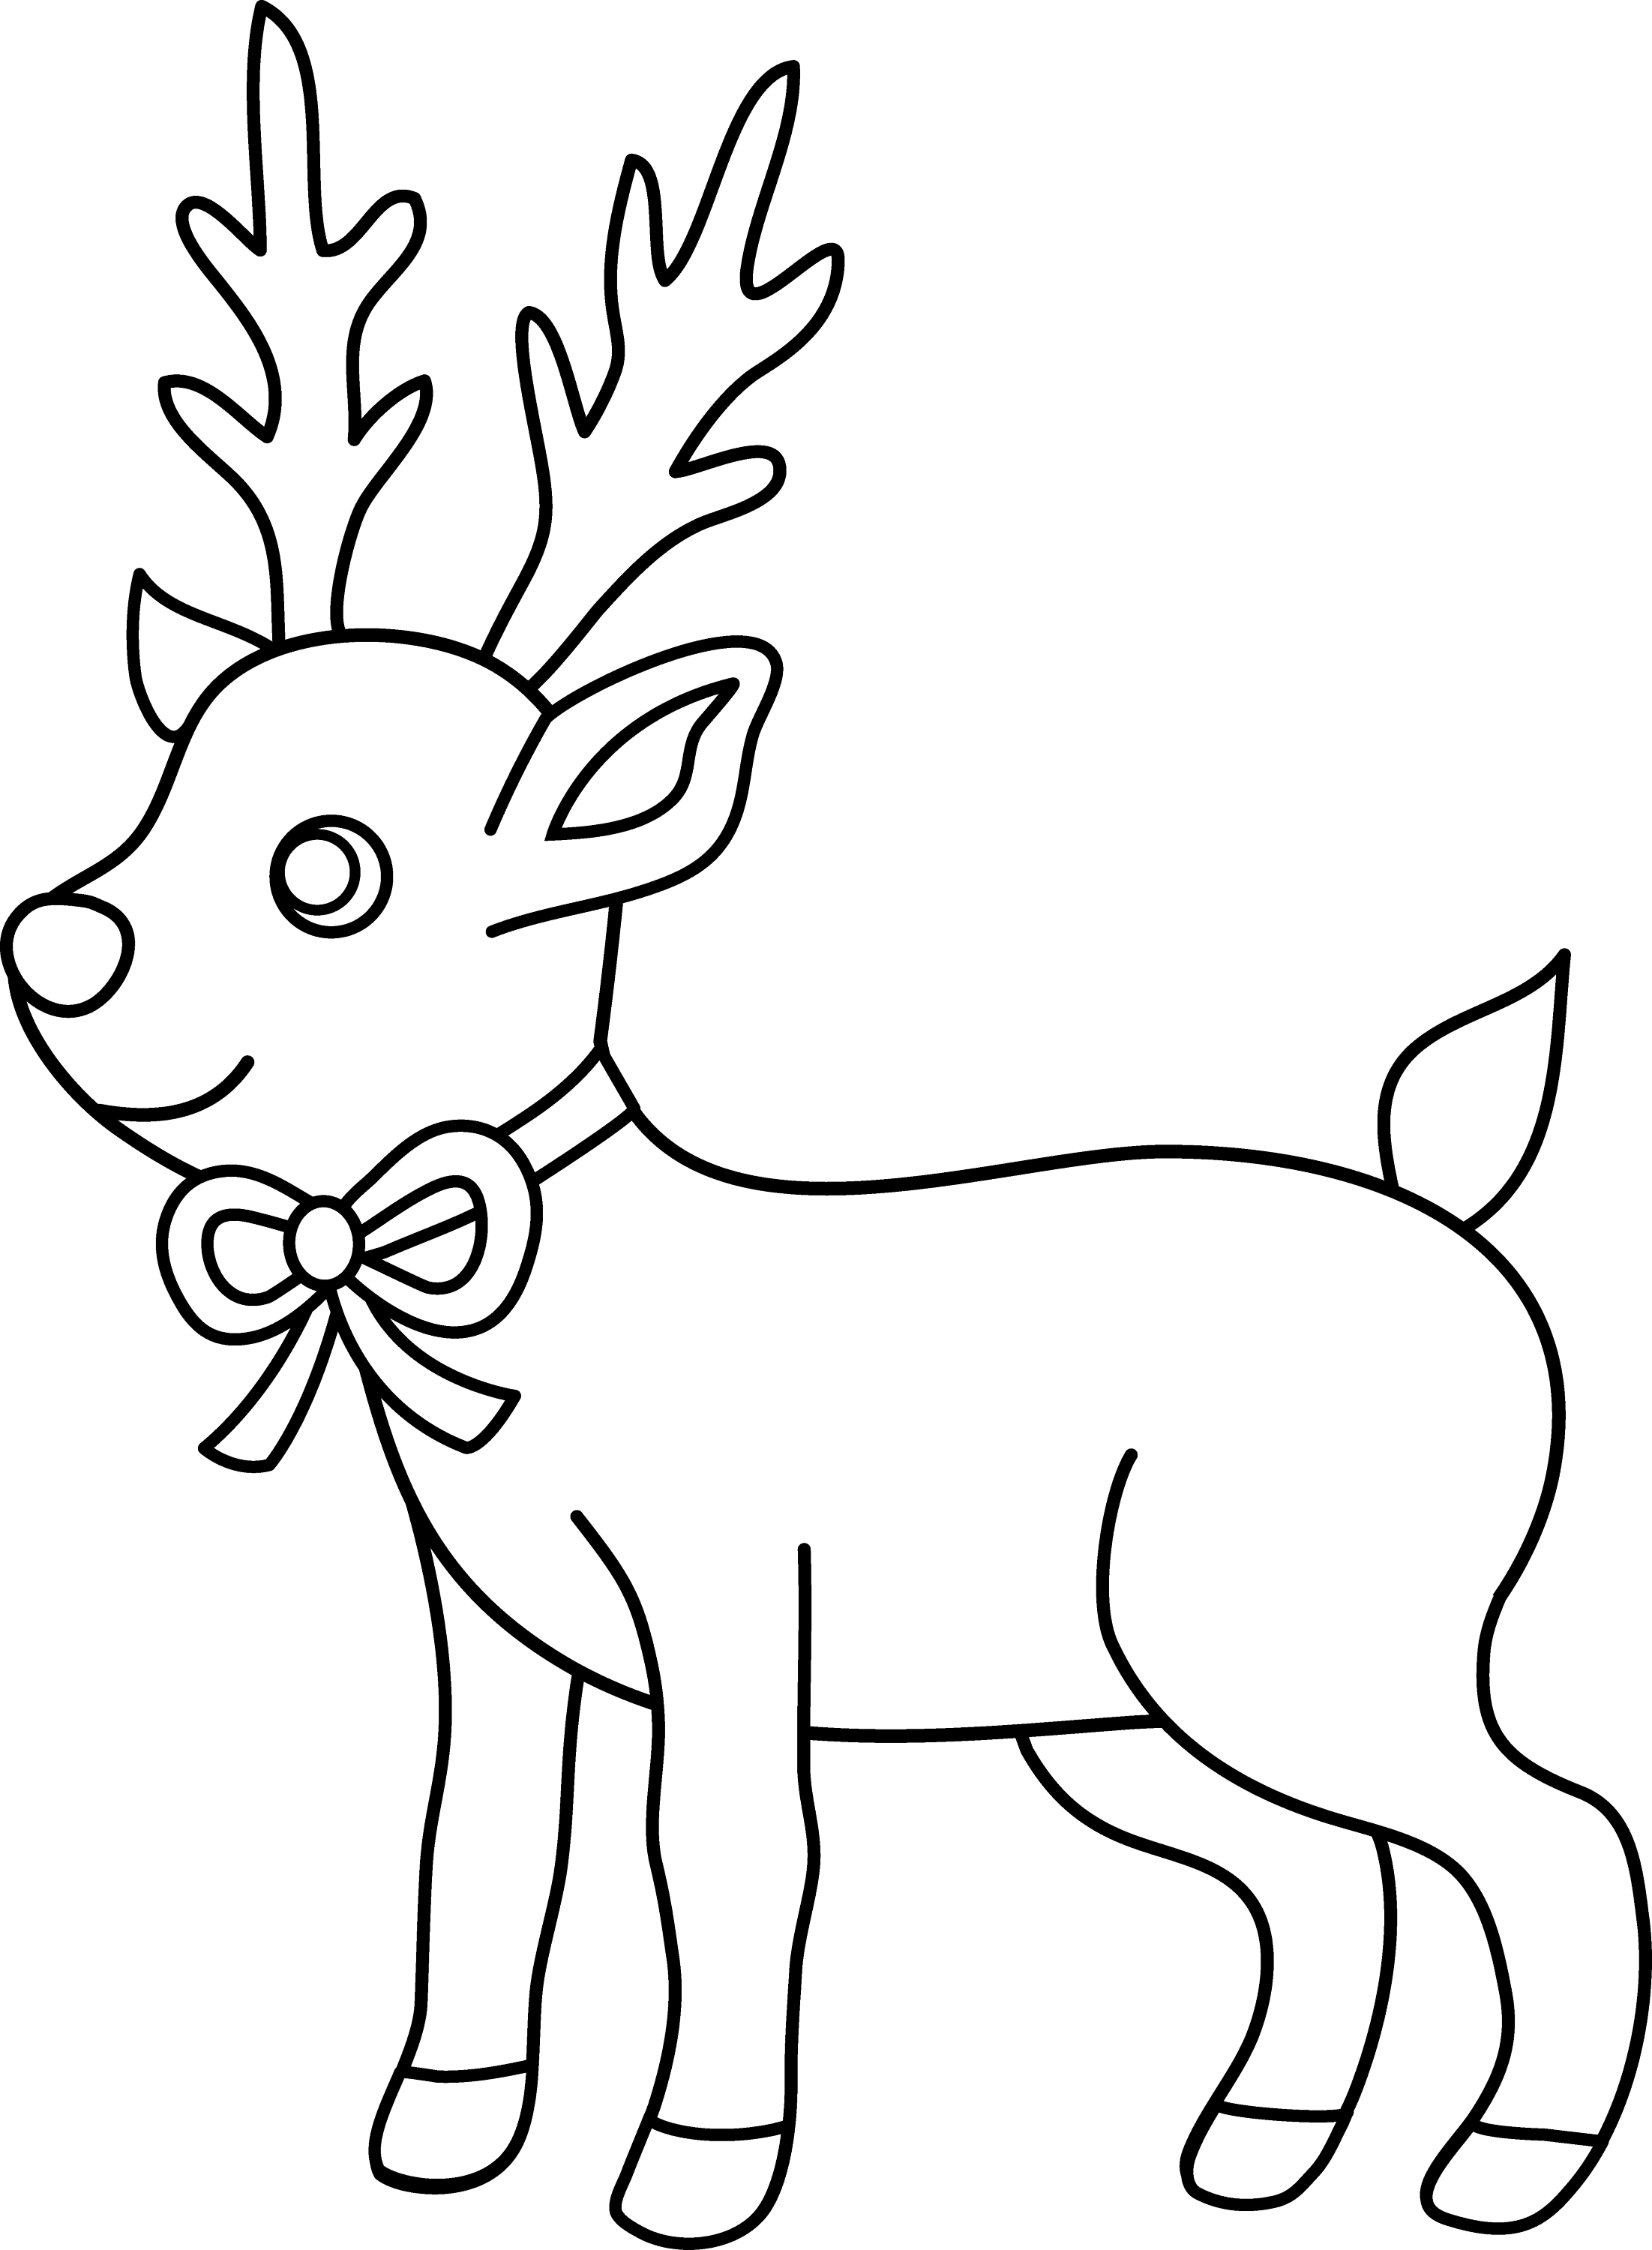 christmas reindeer coloring pages christmas reindeer coloring page free clip art reindeer coloring pages christmas